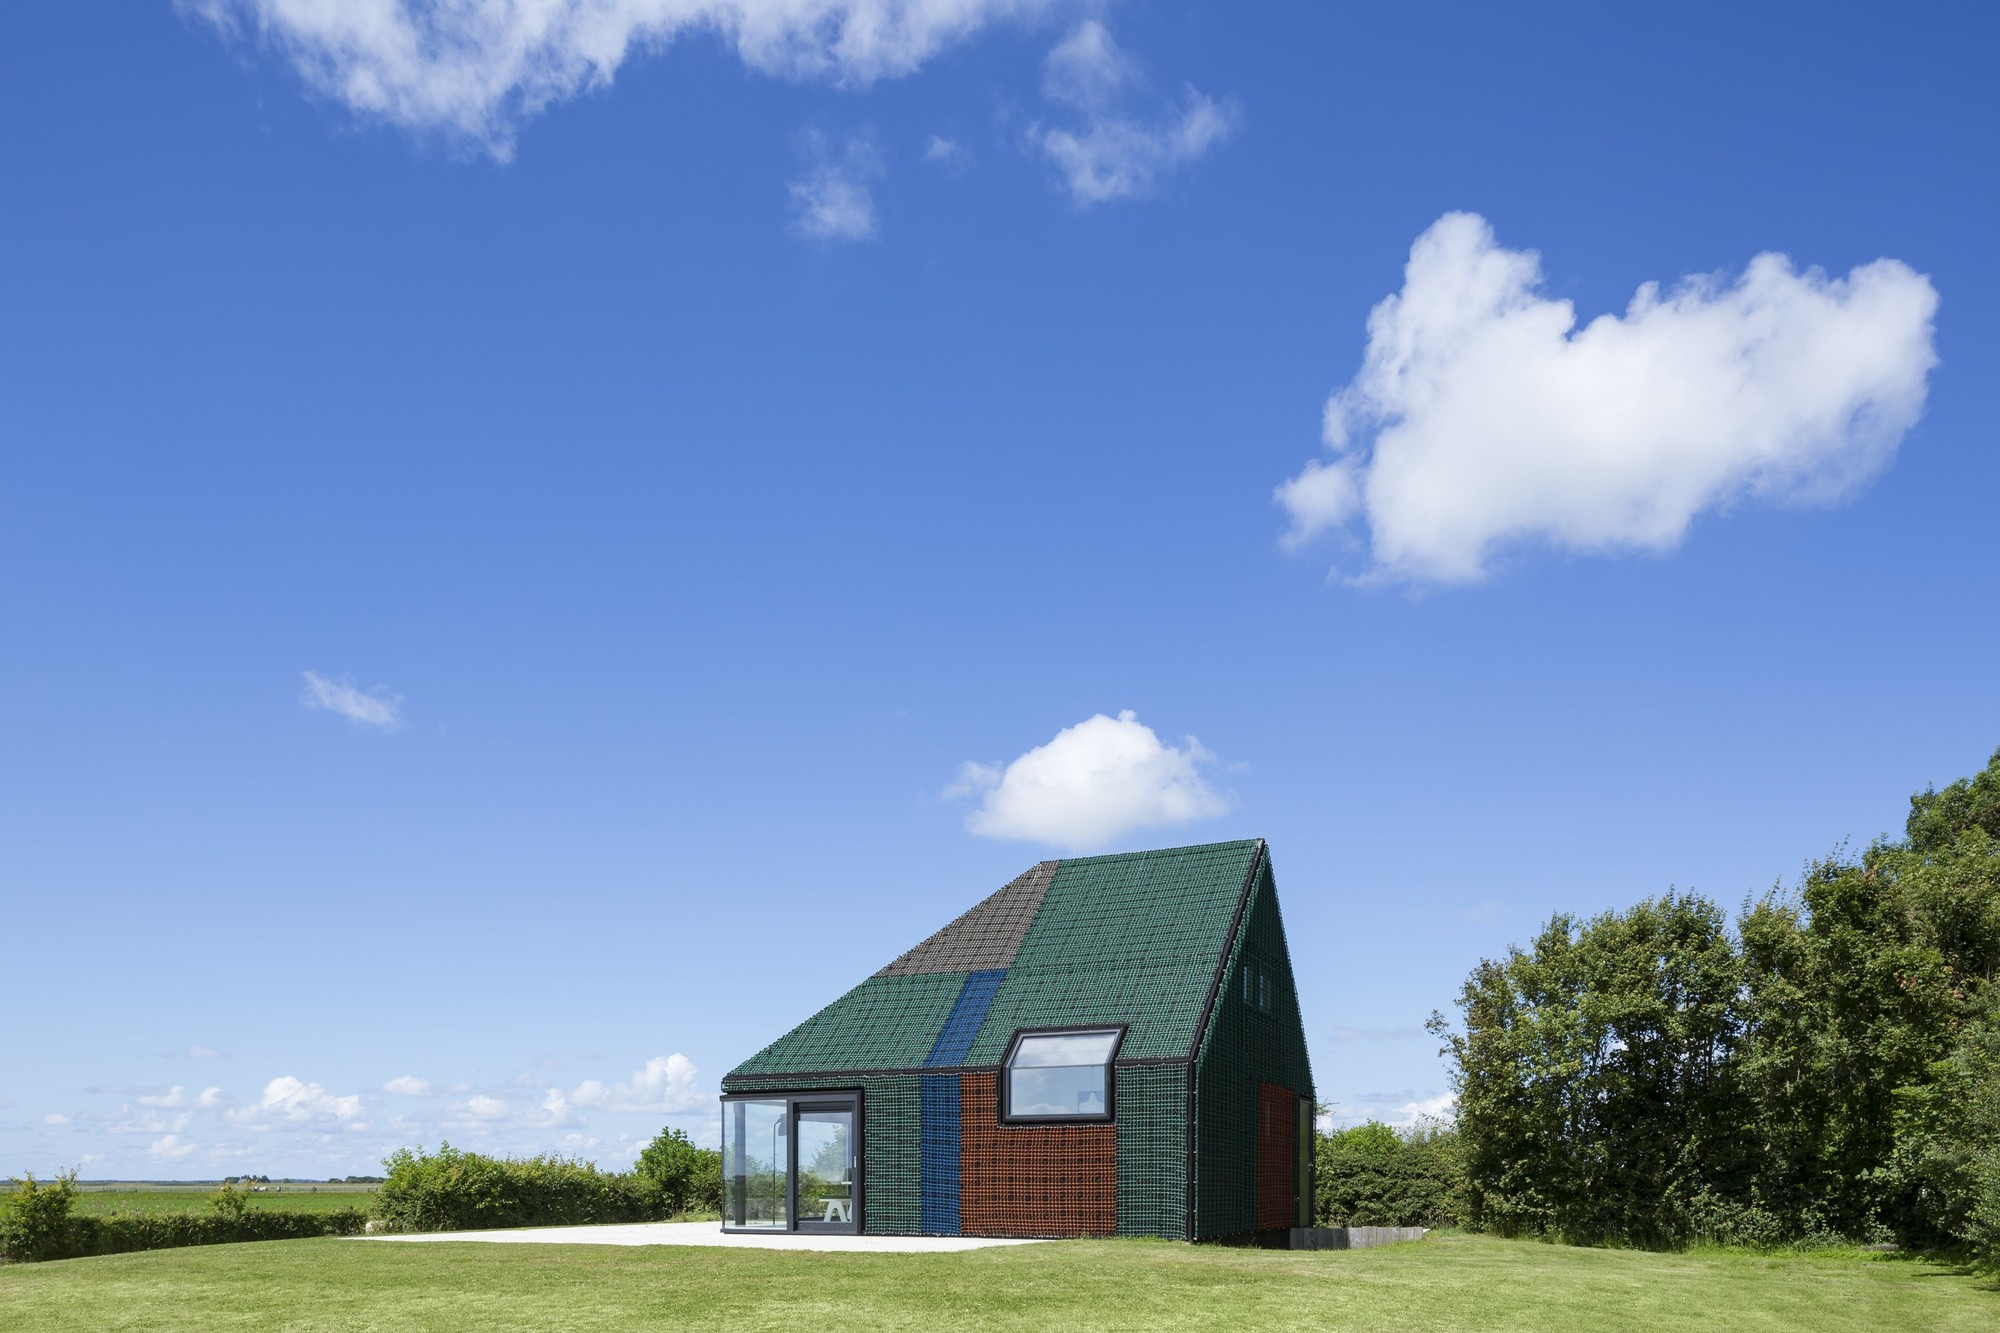 Rubber Holiday Home / Benthem Crouwel Architects, © Jannes Linders